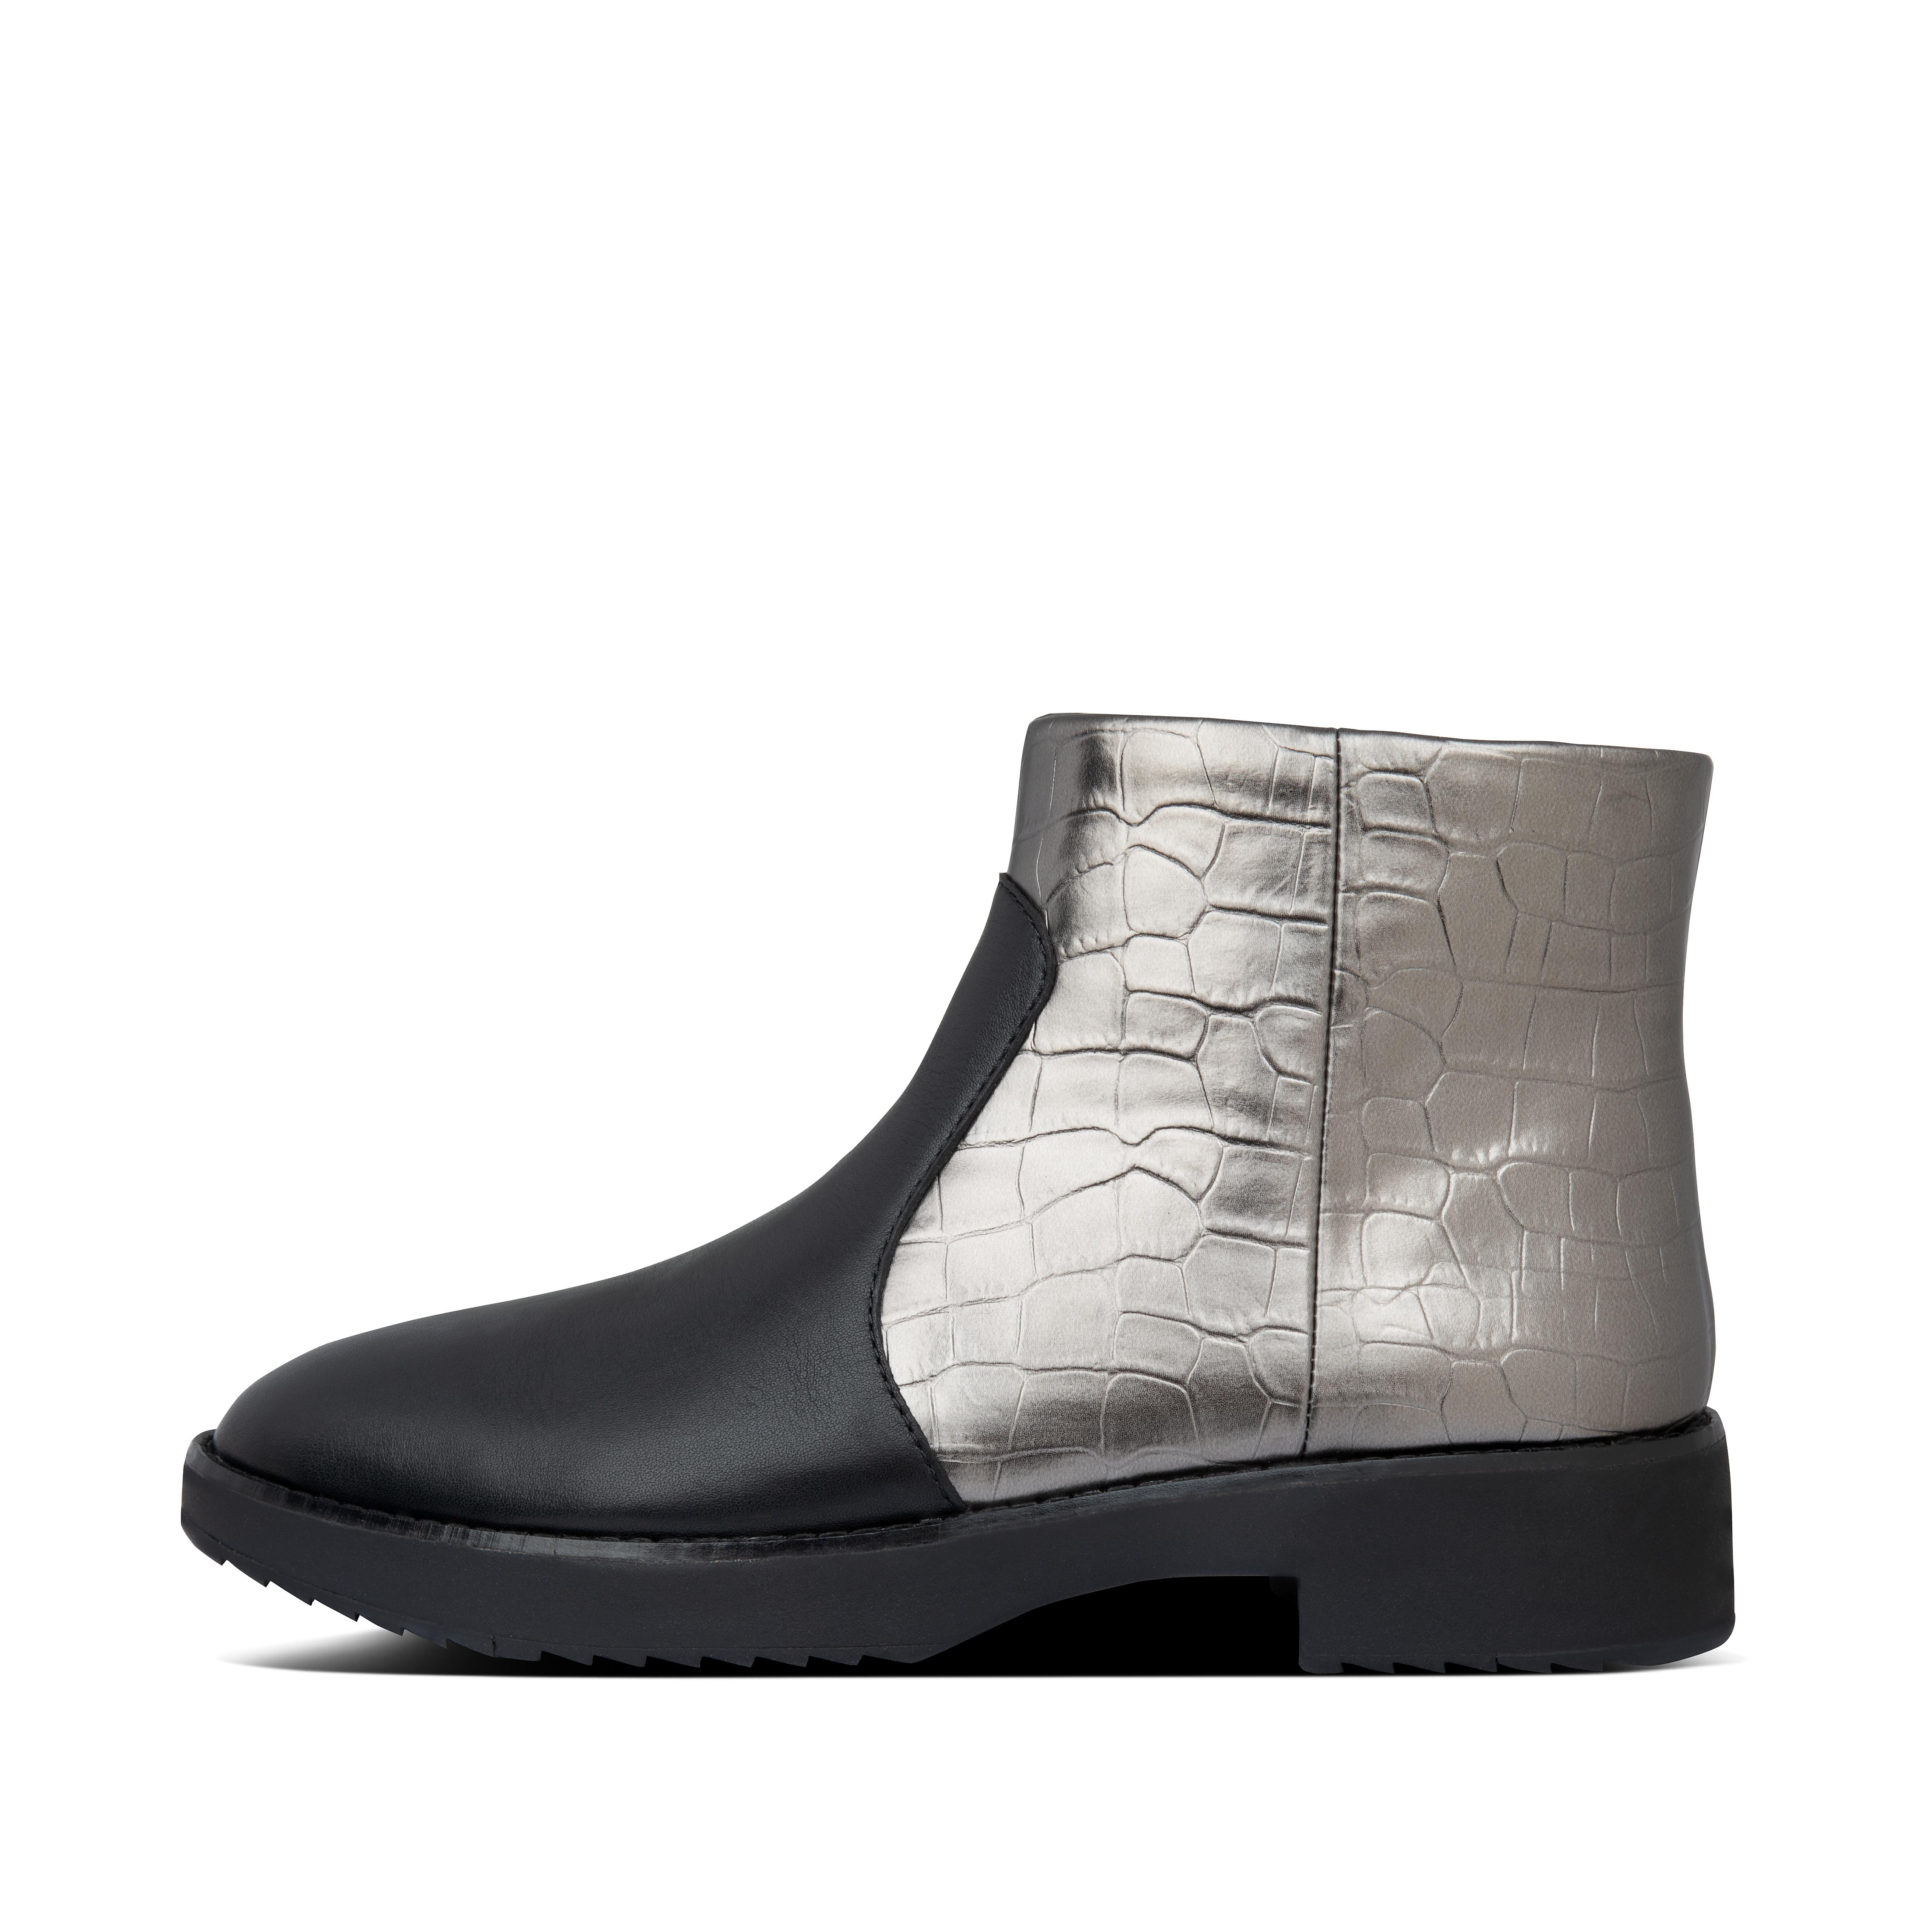 Your go-to statement boots this season - sleek, smart, standout. but seriously comfortable too. Low cut, mixing smooth leather and shiny metallic mock croc, these can go casual or formal and are a great between-seasons option. Sporting an inside zip and a smarter-look version of our all-day cushioning Supercom FF™ midsoles, with a small heel and softly pointed toe. An unbeatable combo of practical and fabulous.